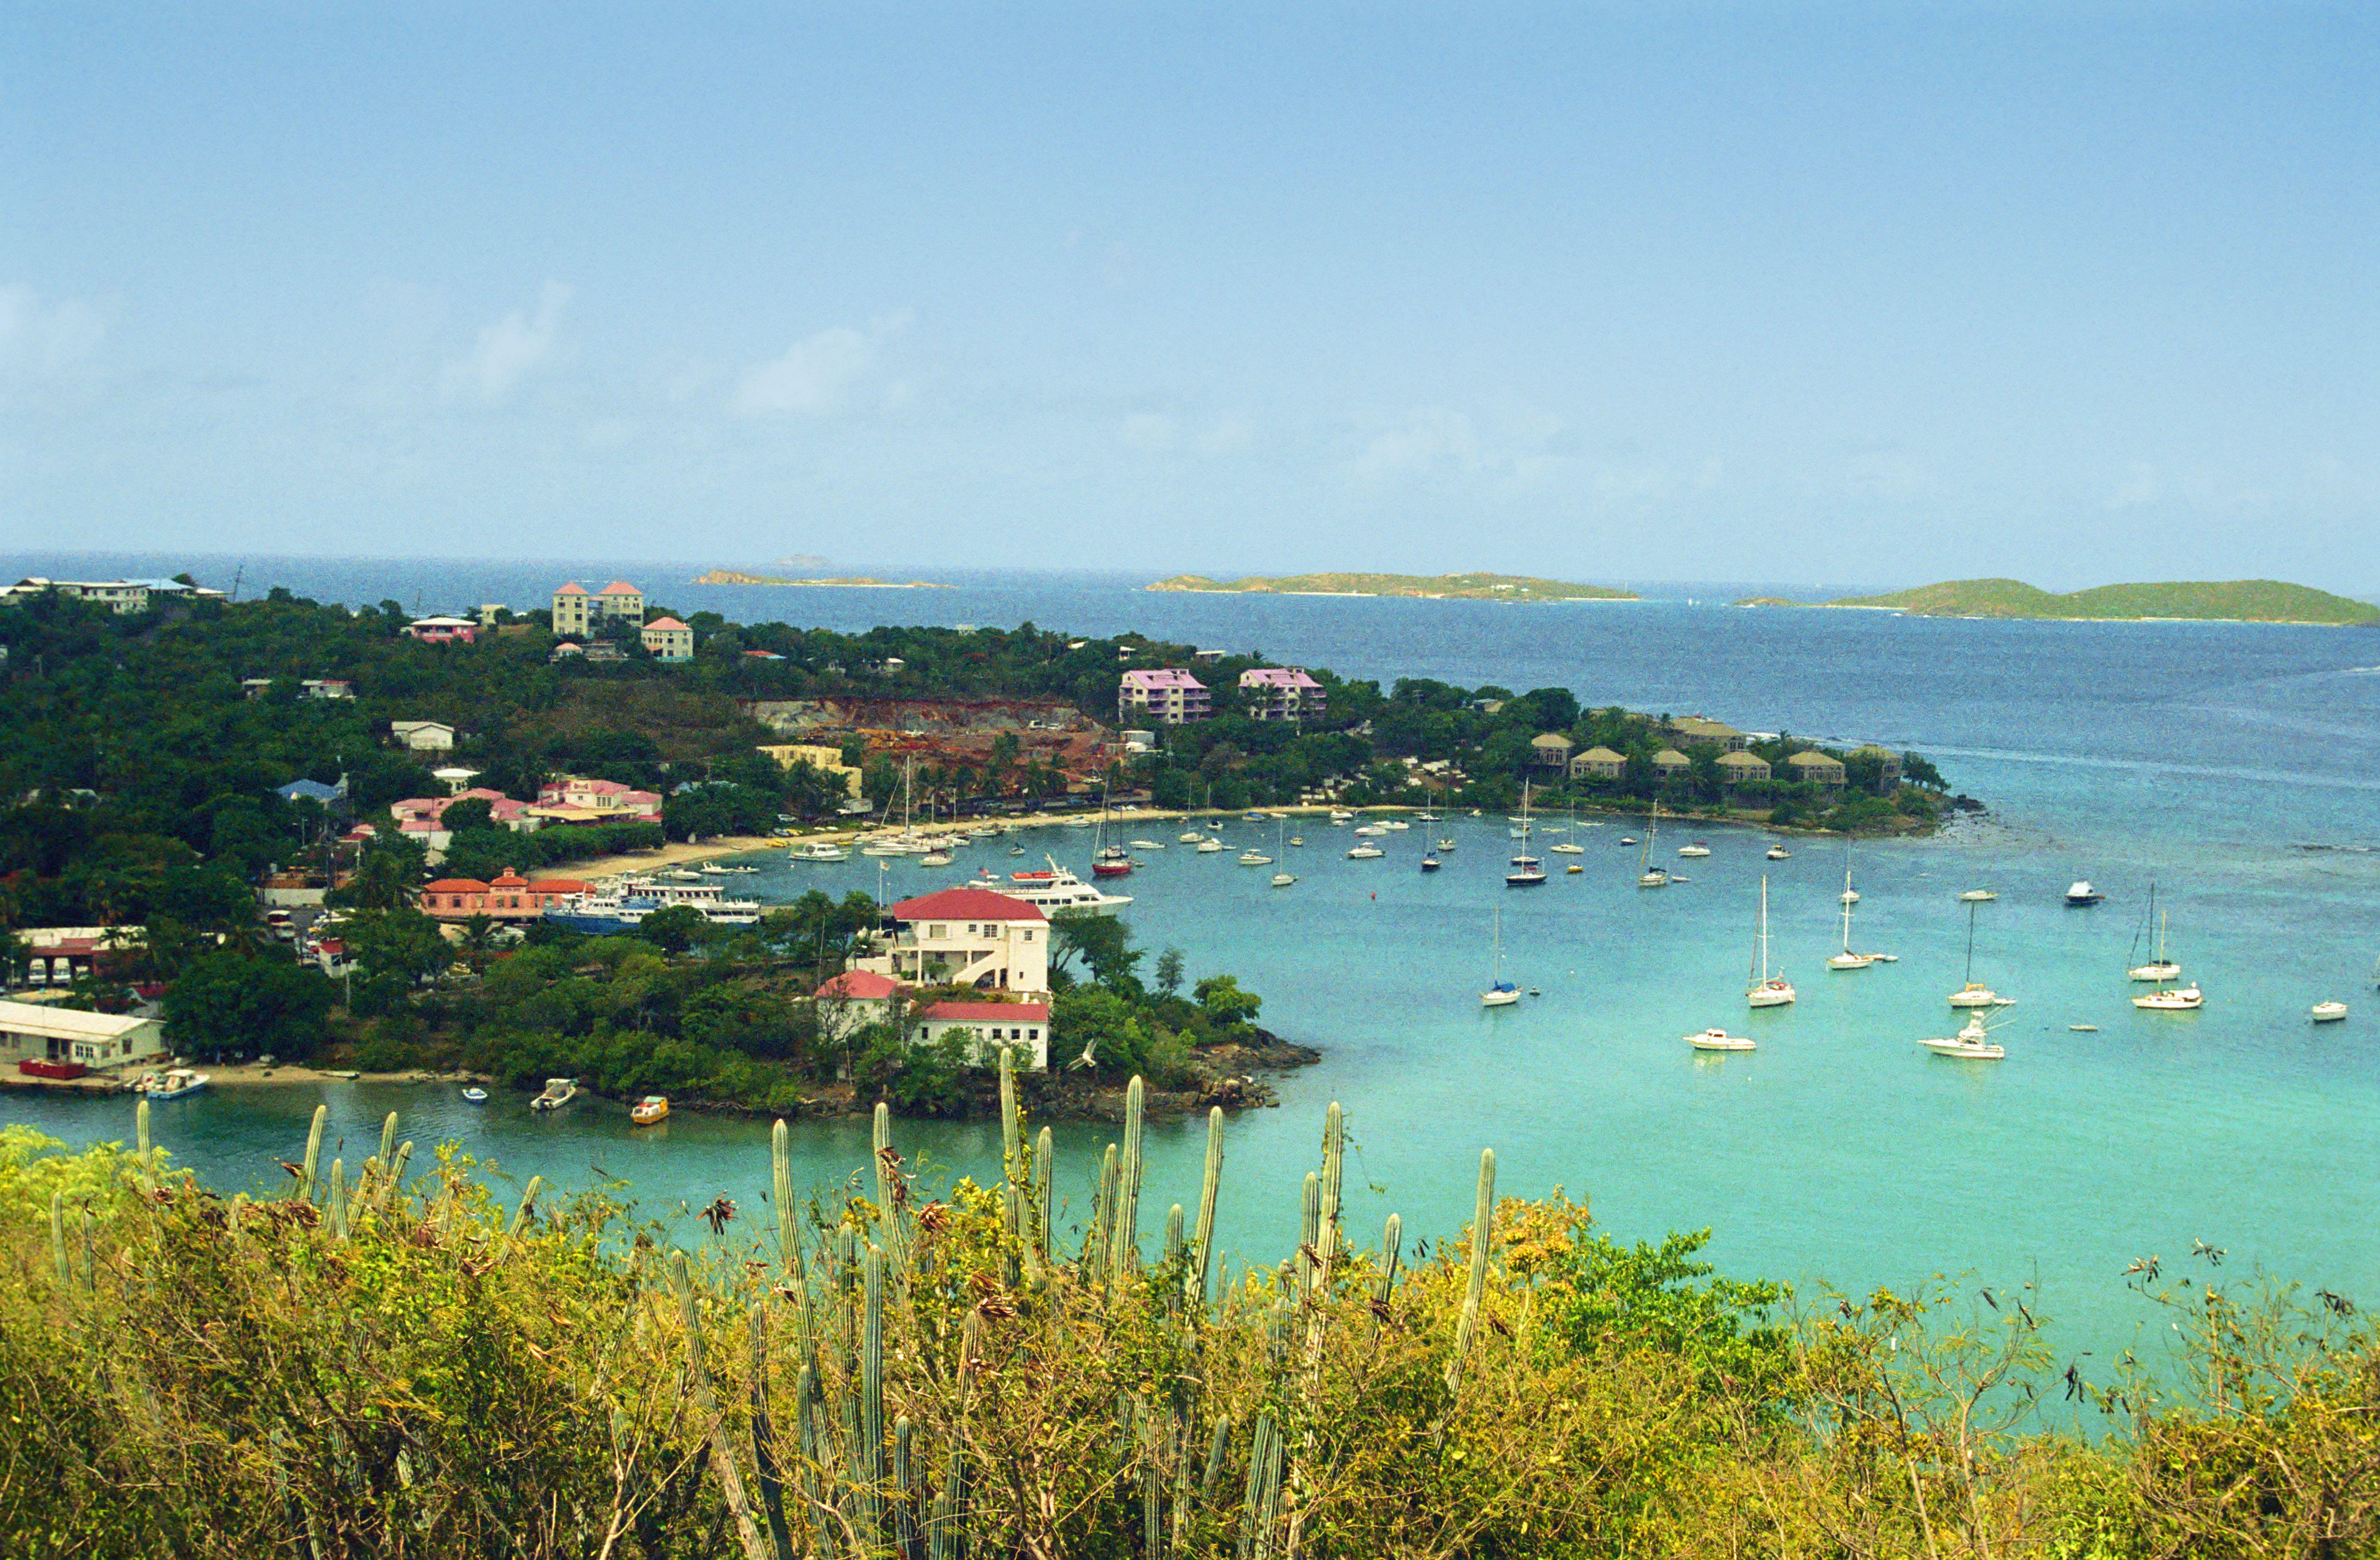 Cruz Bay, St. John : Travel Wallpaper and Stock Photo